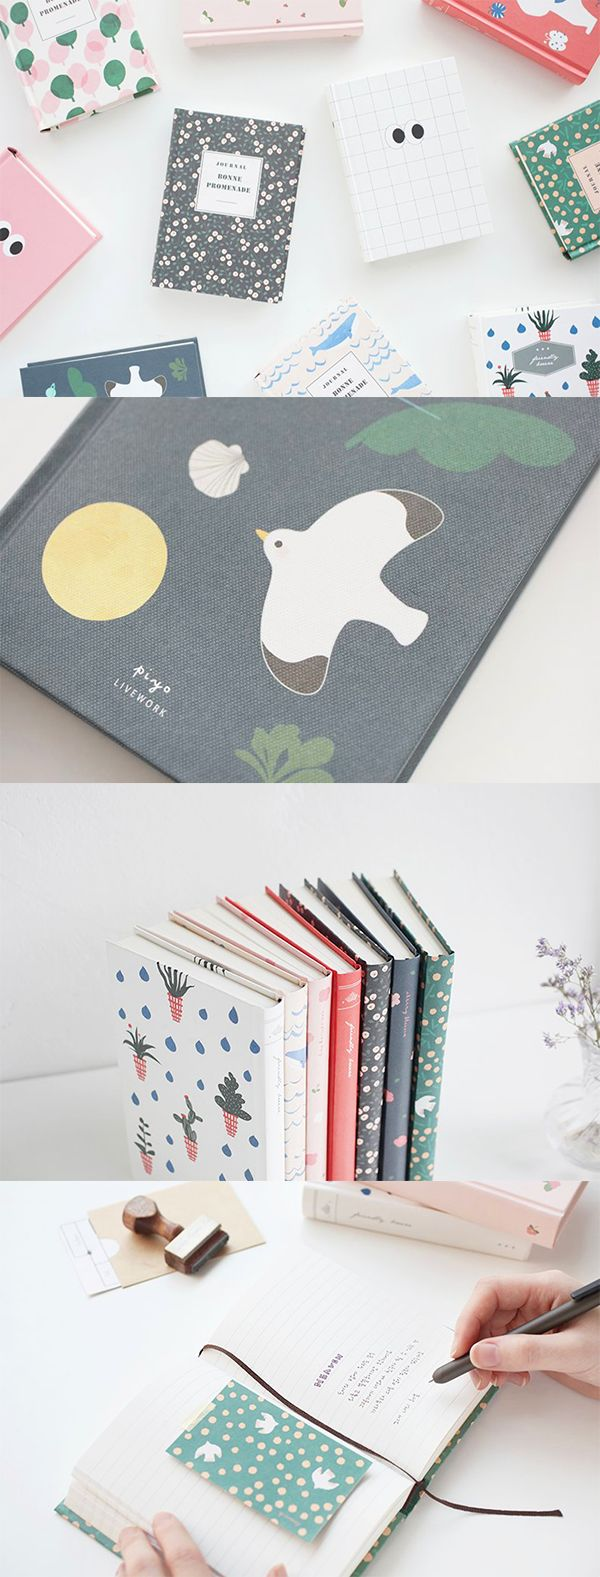 Diy notebook covers so your books and you will stand out at school - Diy Notebook Covers So Your Books And You Will Stand Out At School Diy Notebook